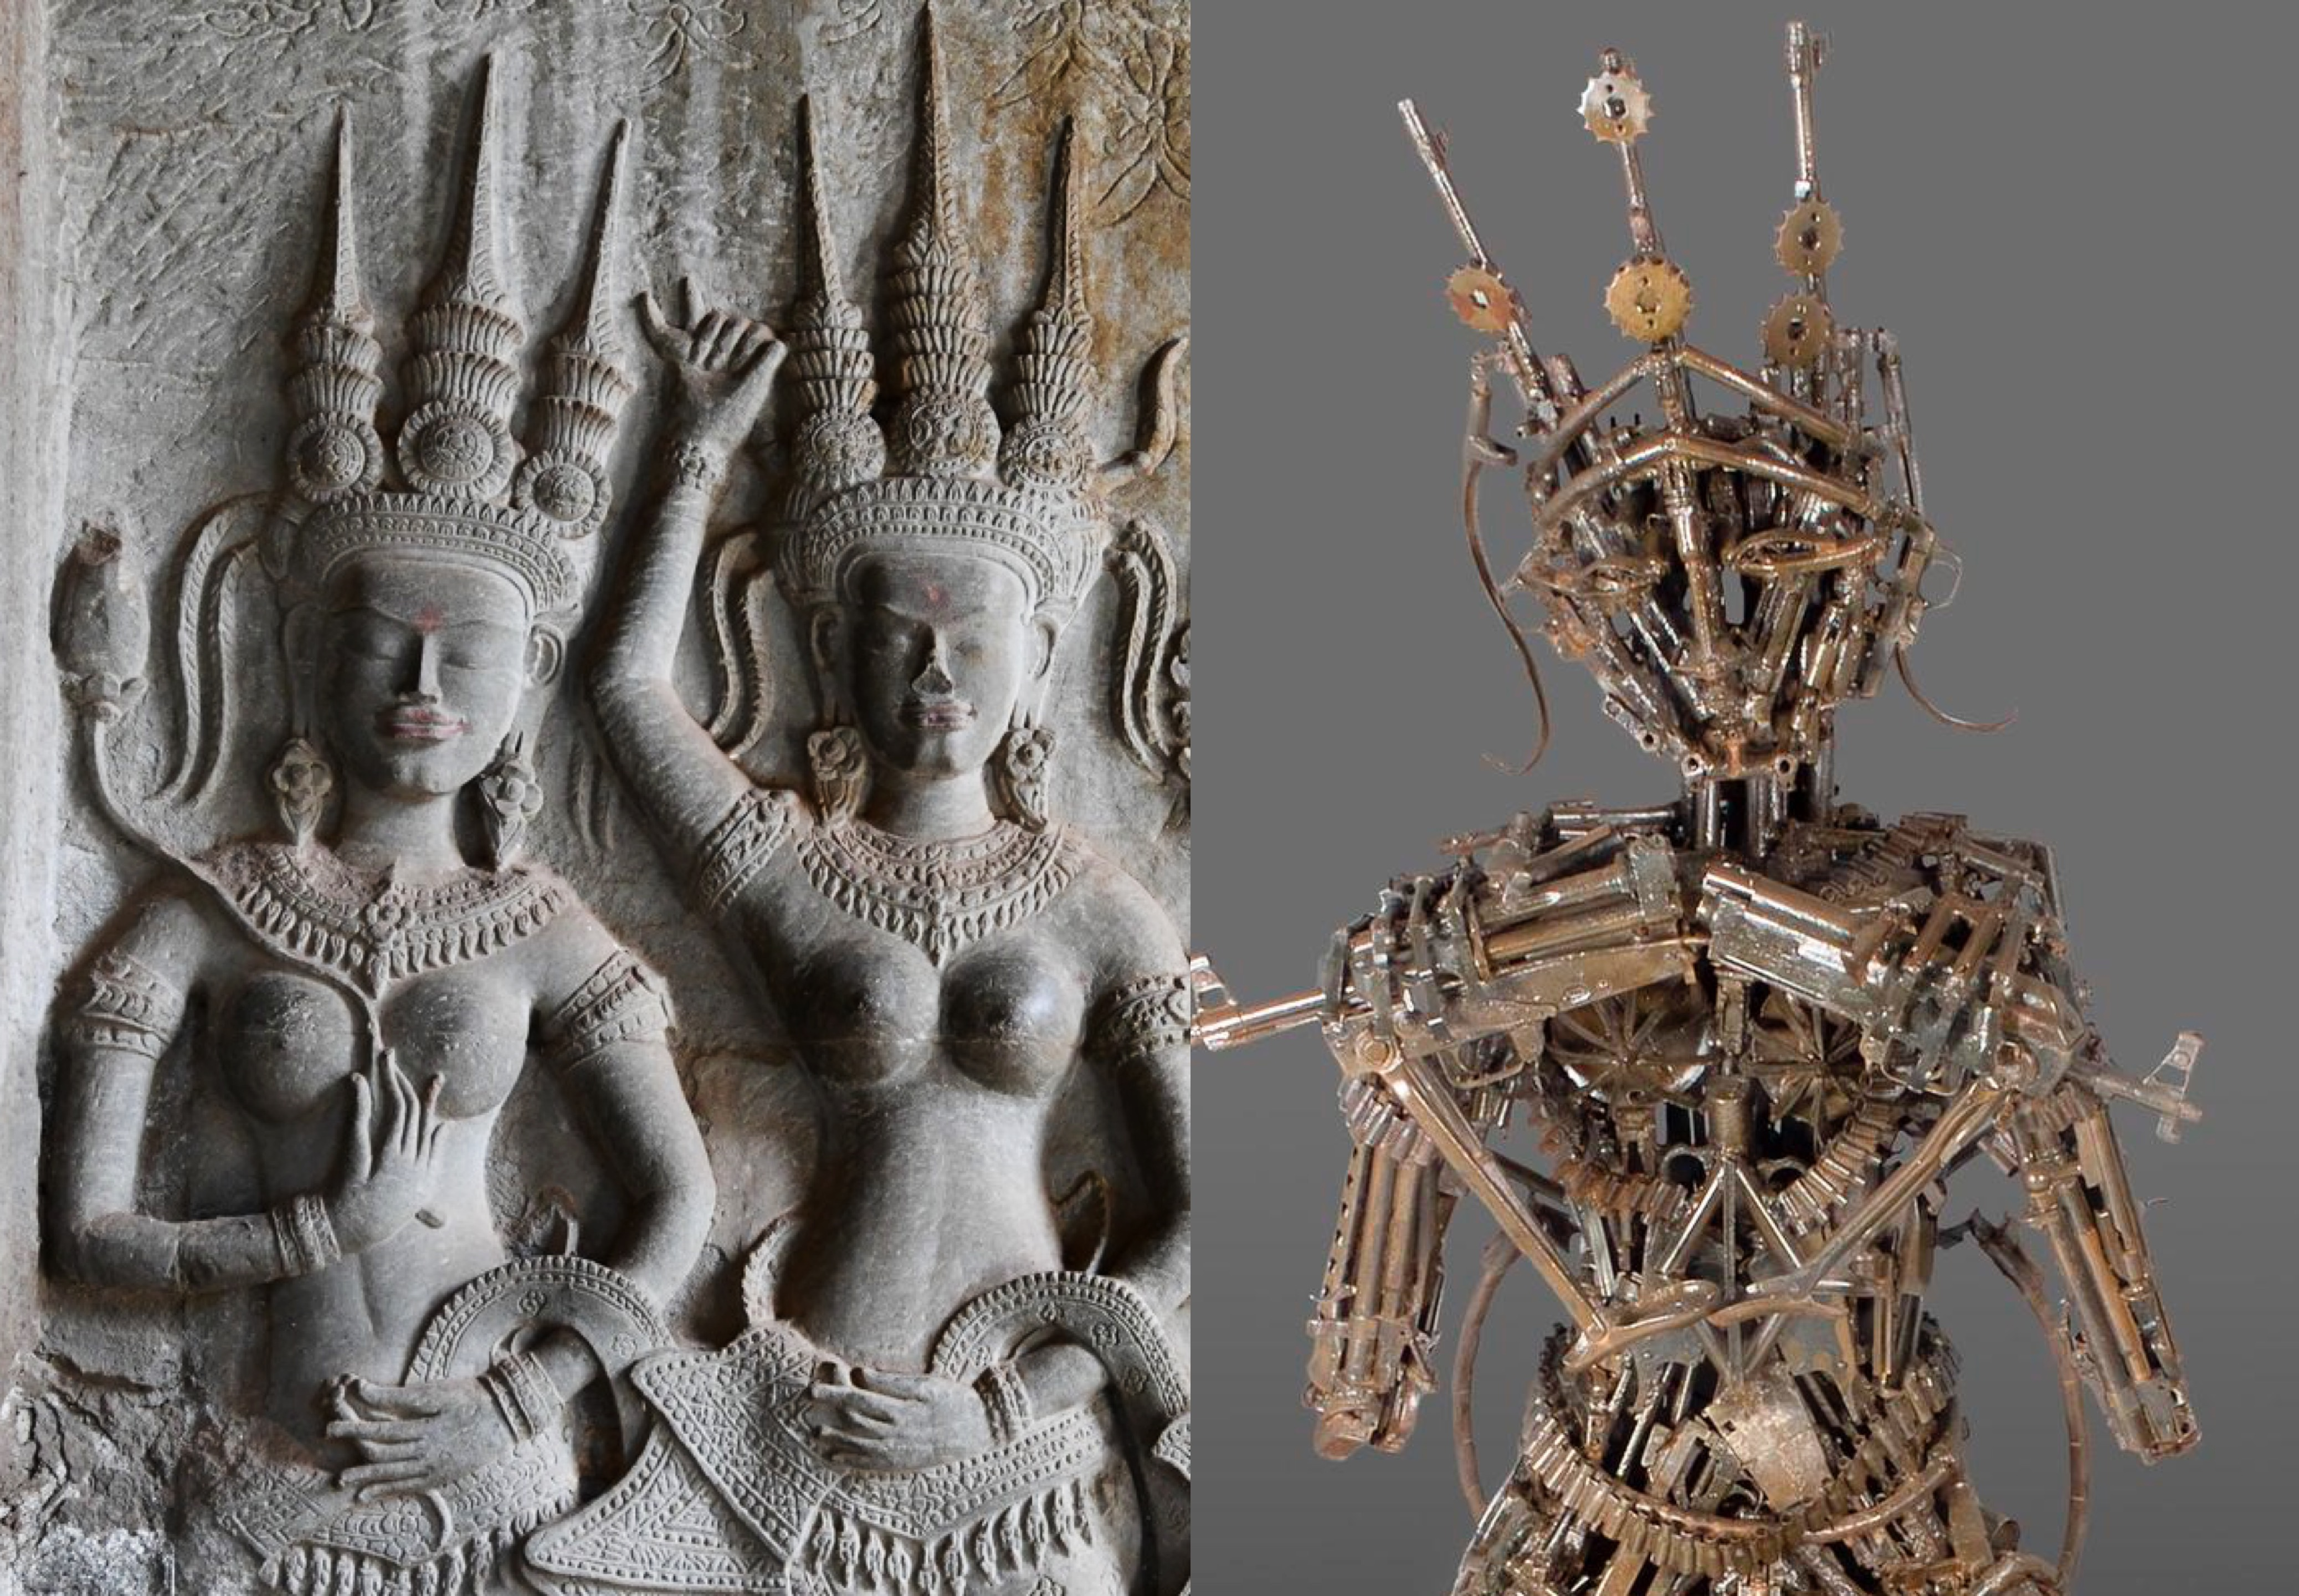 The image is split in two. On the left side, it is a carving of two feminine-looking figurse wearing headdresses, on gray stone. On the right side, it is a brown sculpture of a person made out of guns.